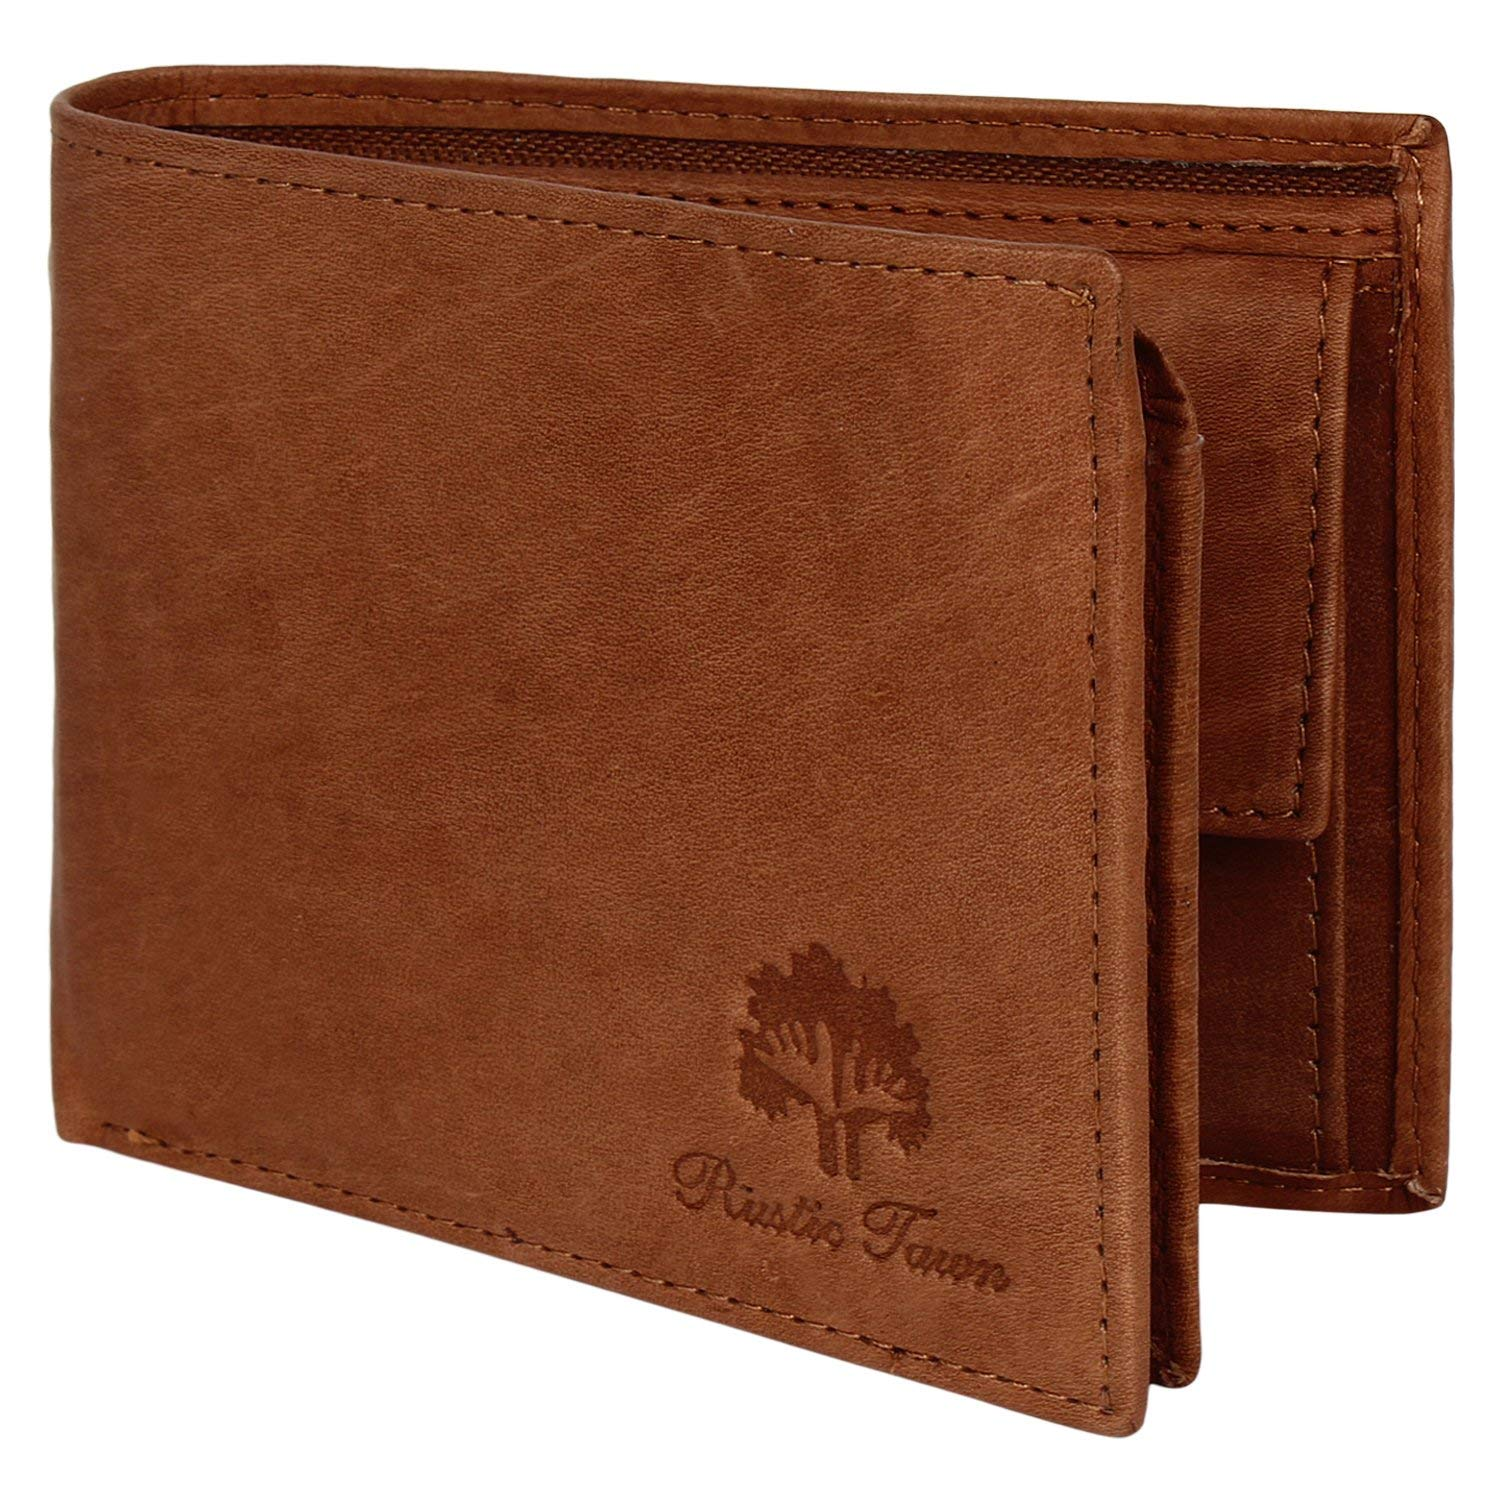 c6a070beee85b Mens Wallet Leather Bifold - Genuine Leather RFID Blocking Bifold Wallet  With Coin Pocket (Cognac